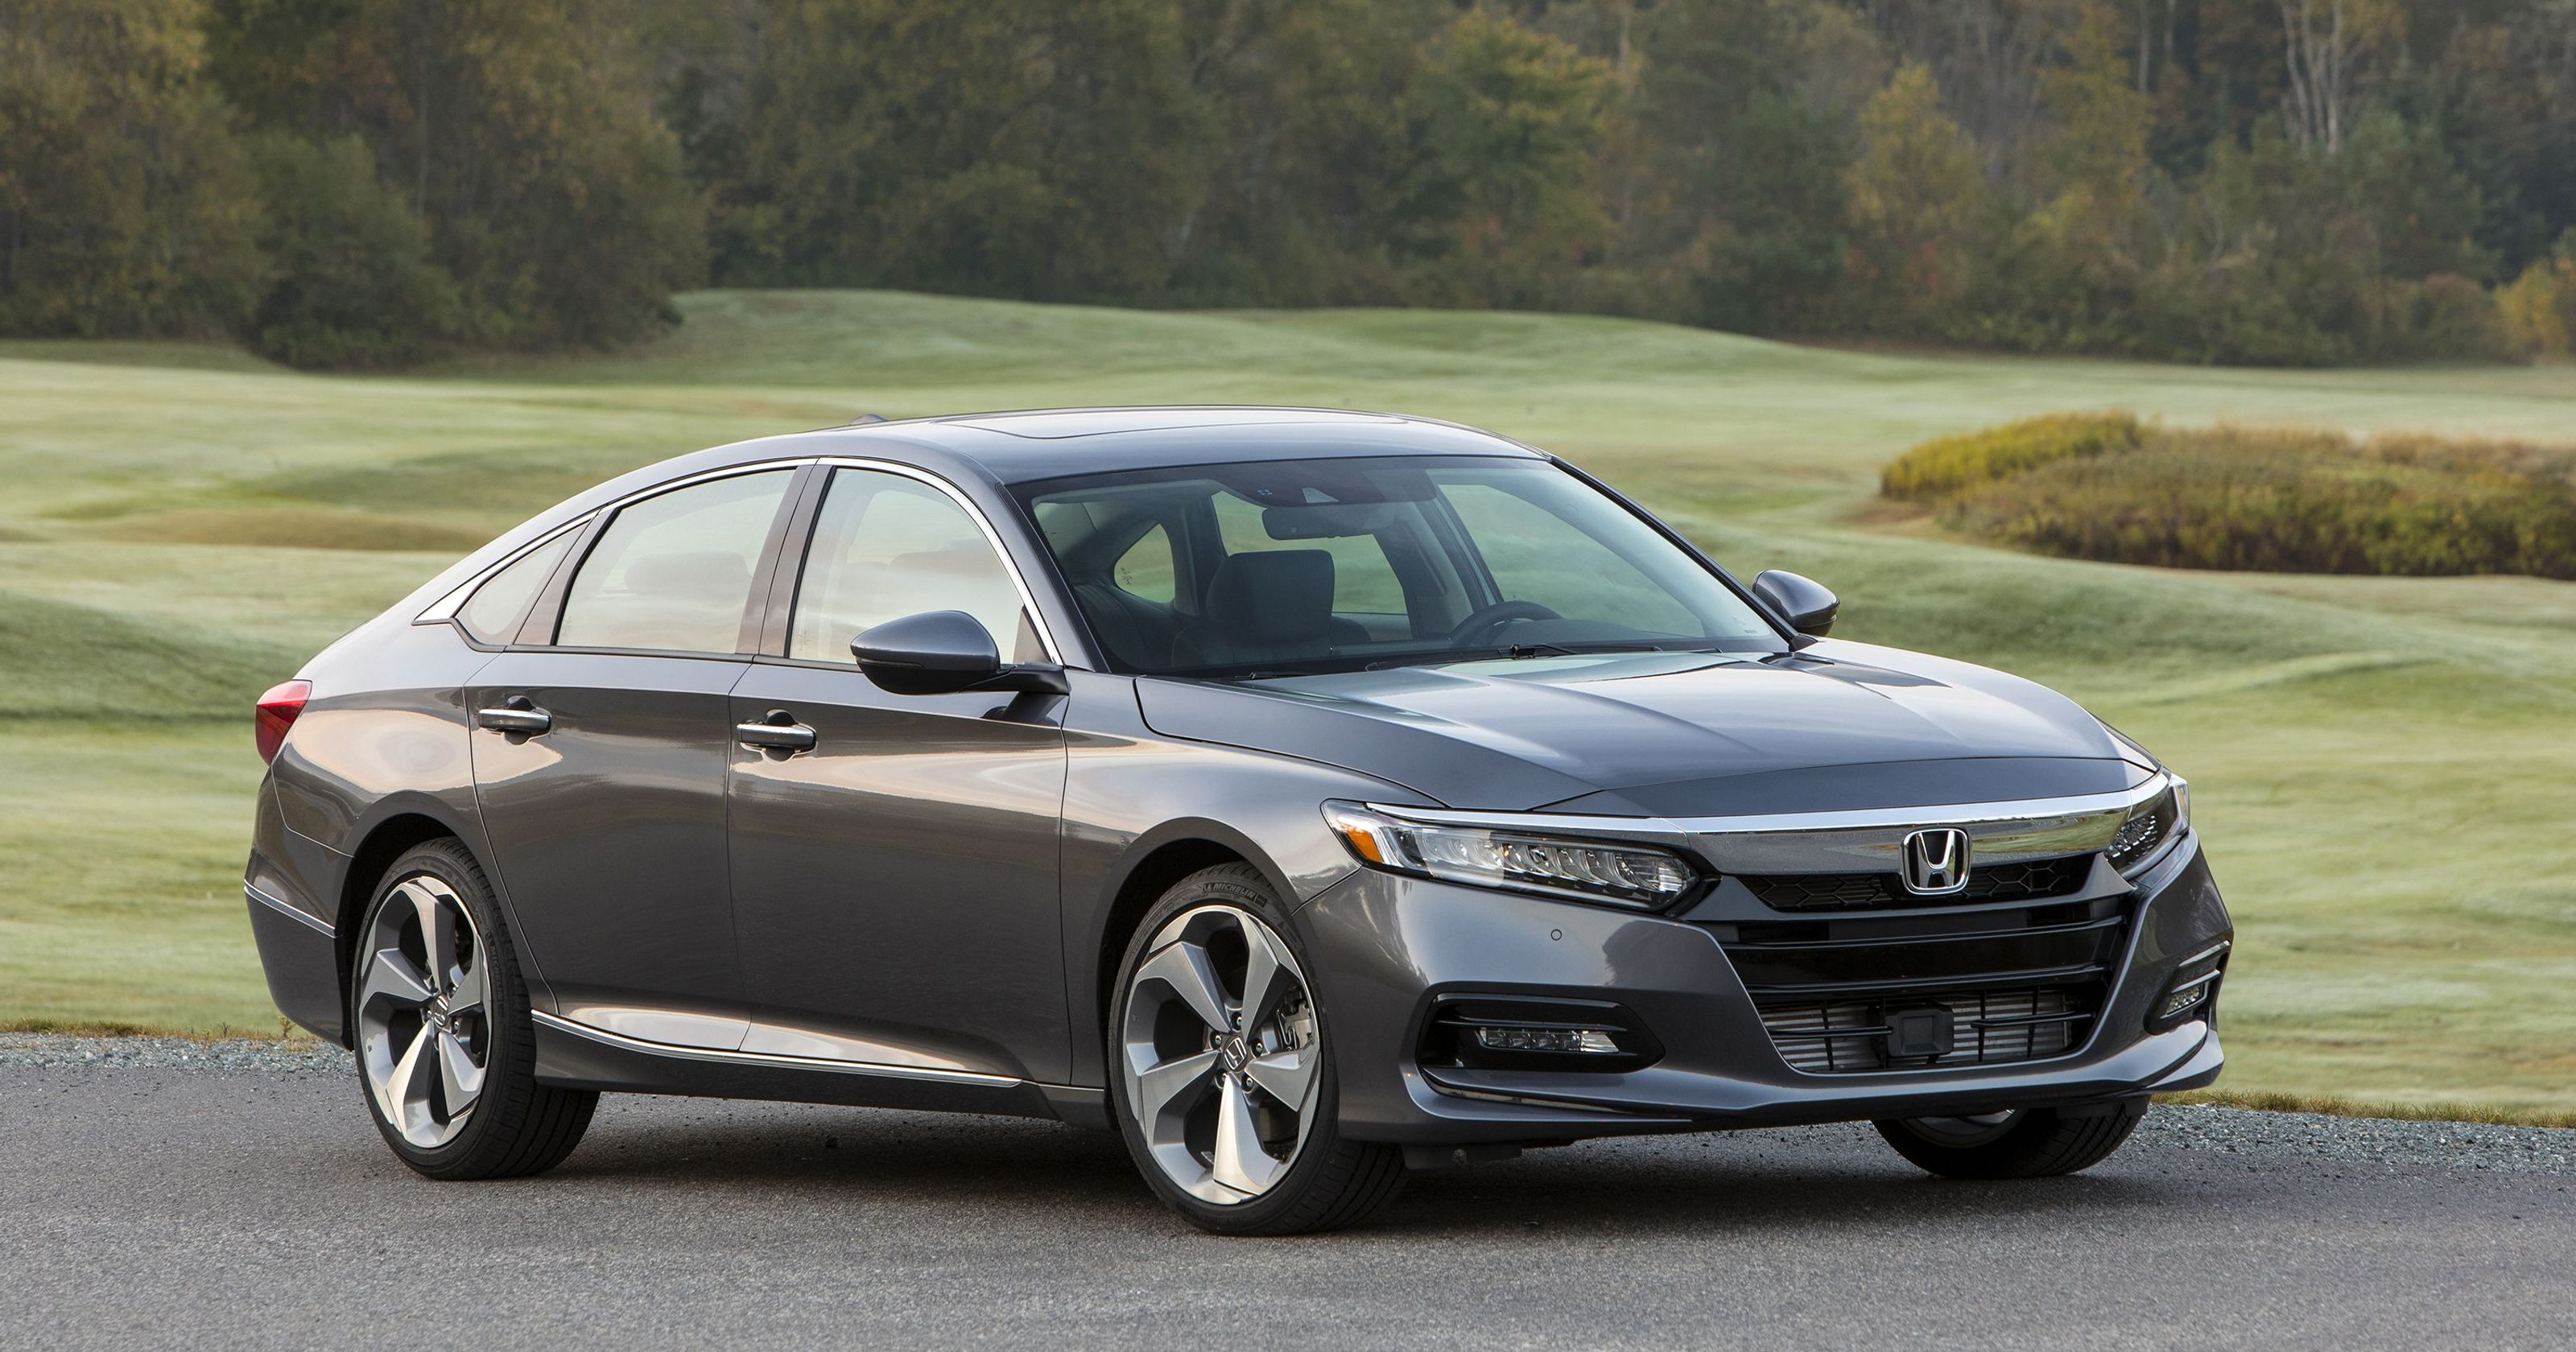 54 The Best 2020 Honda Accord Sedan New Review